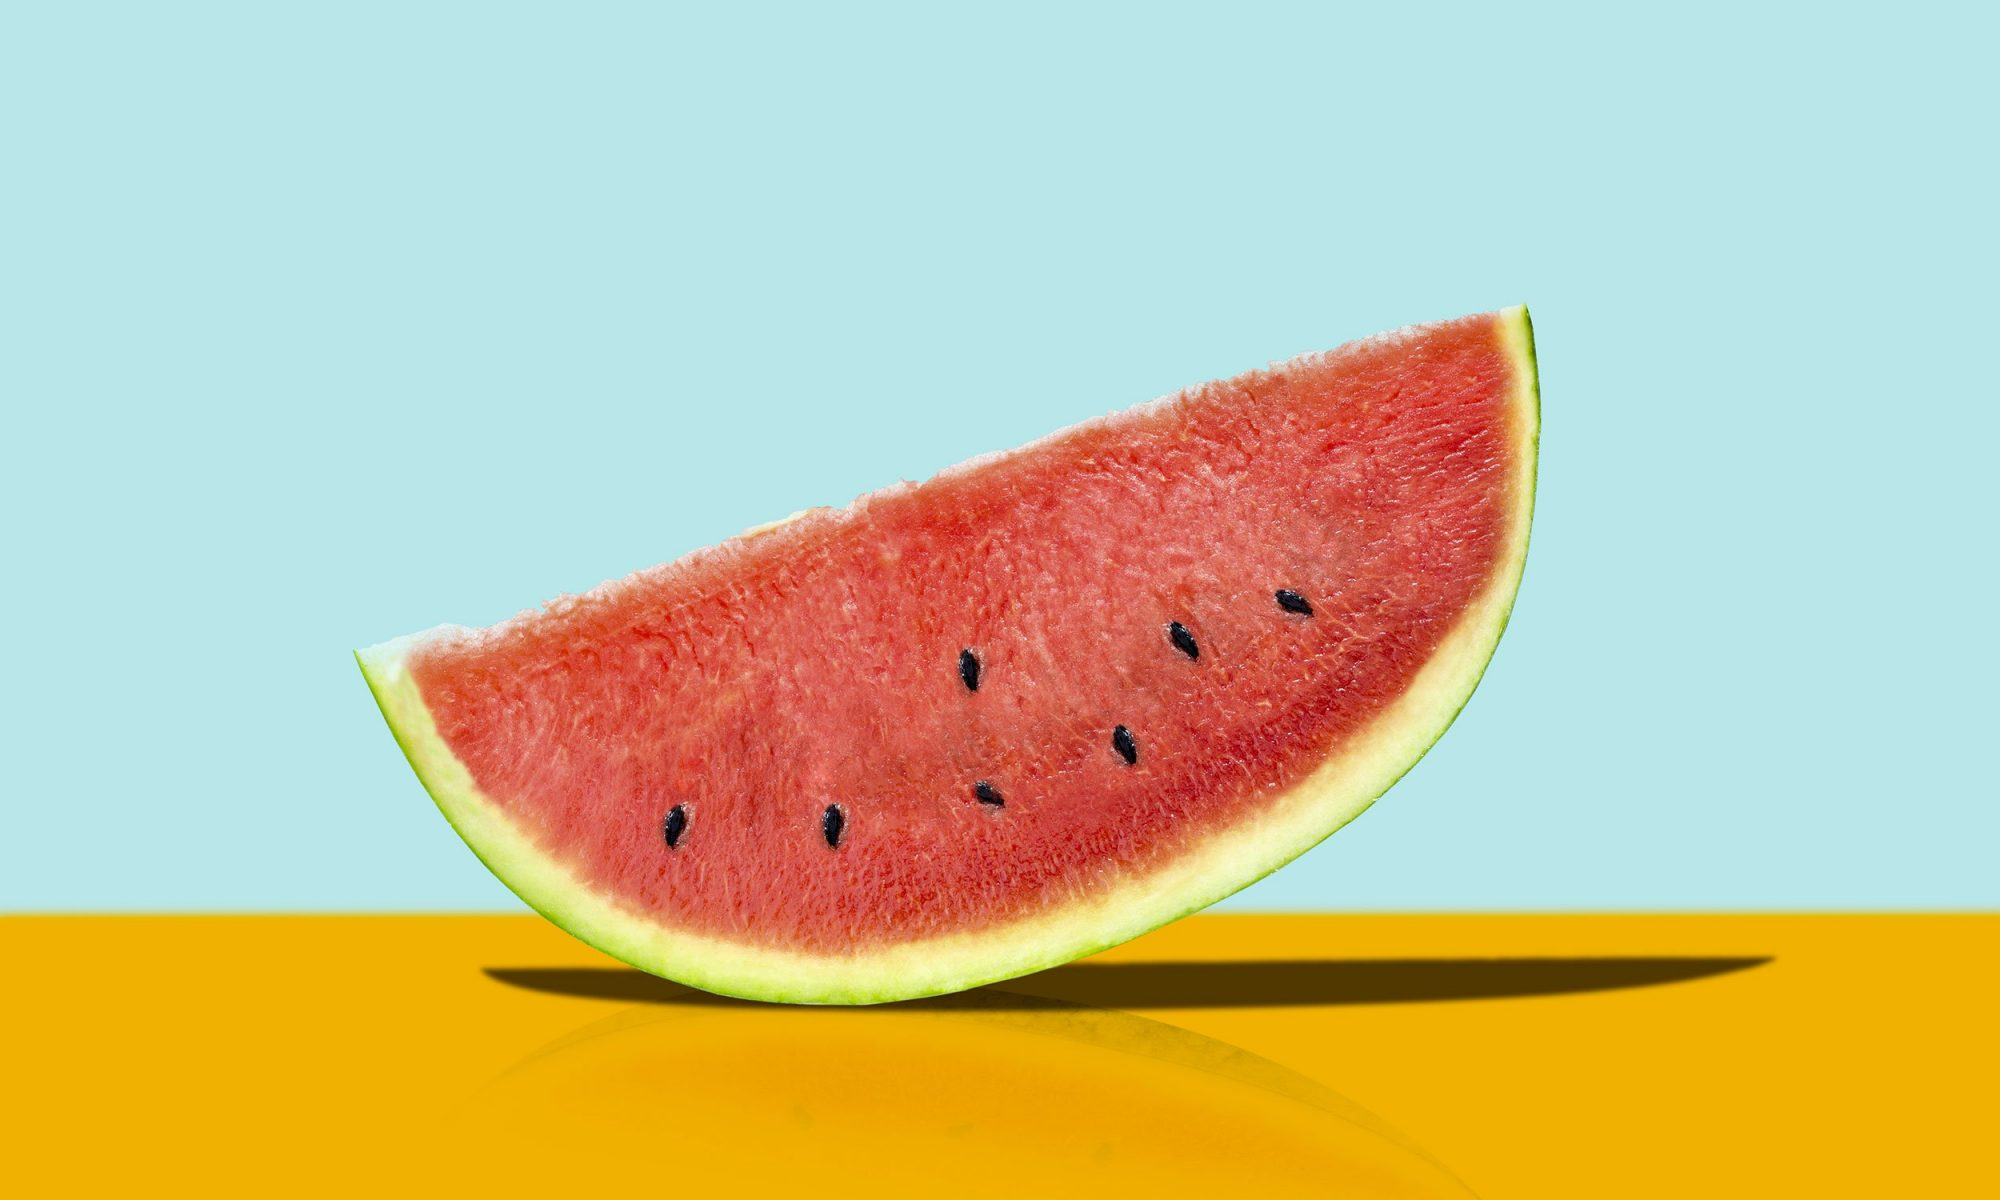 How long does watermelon last myrecipes